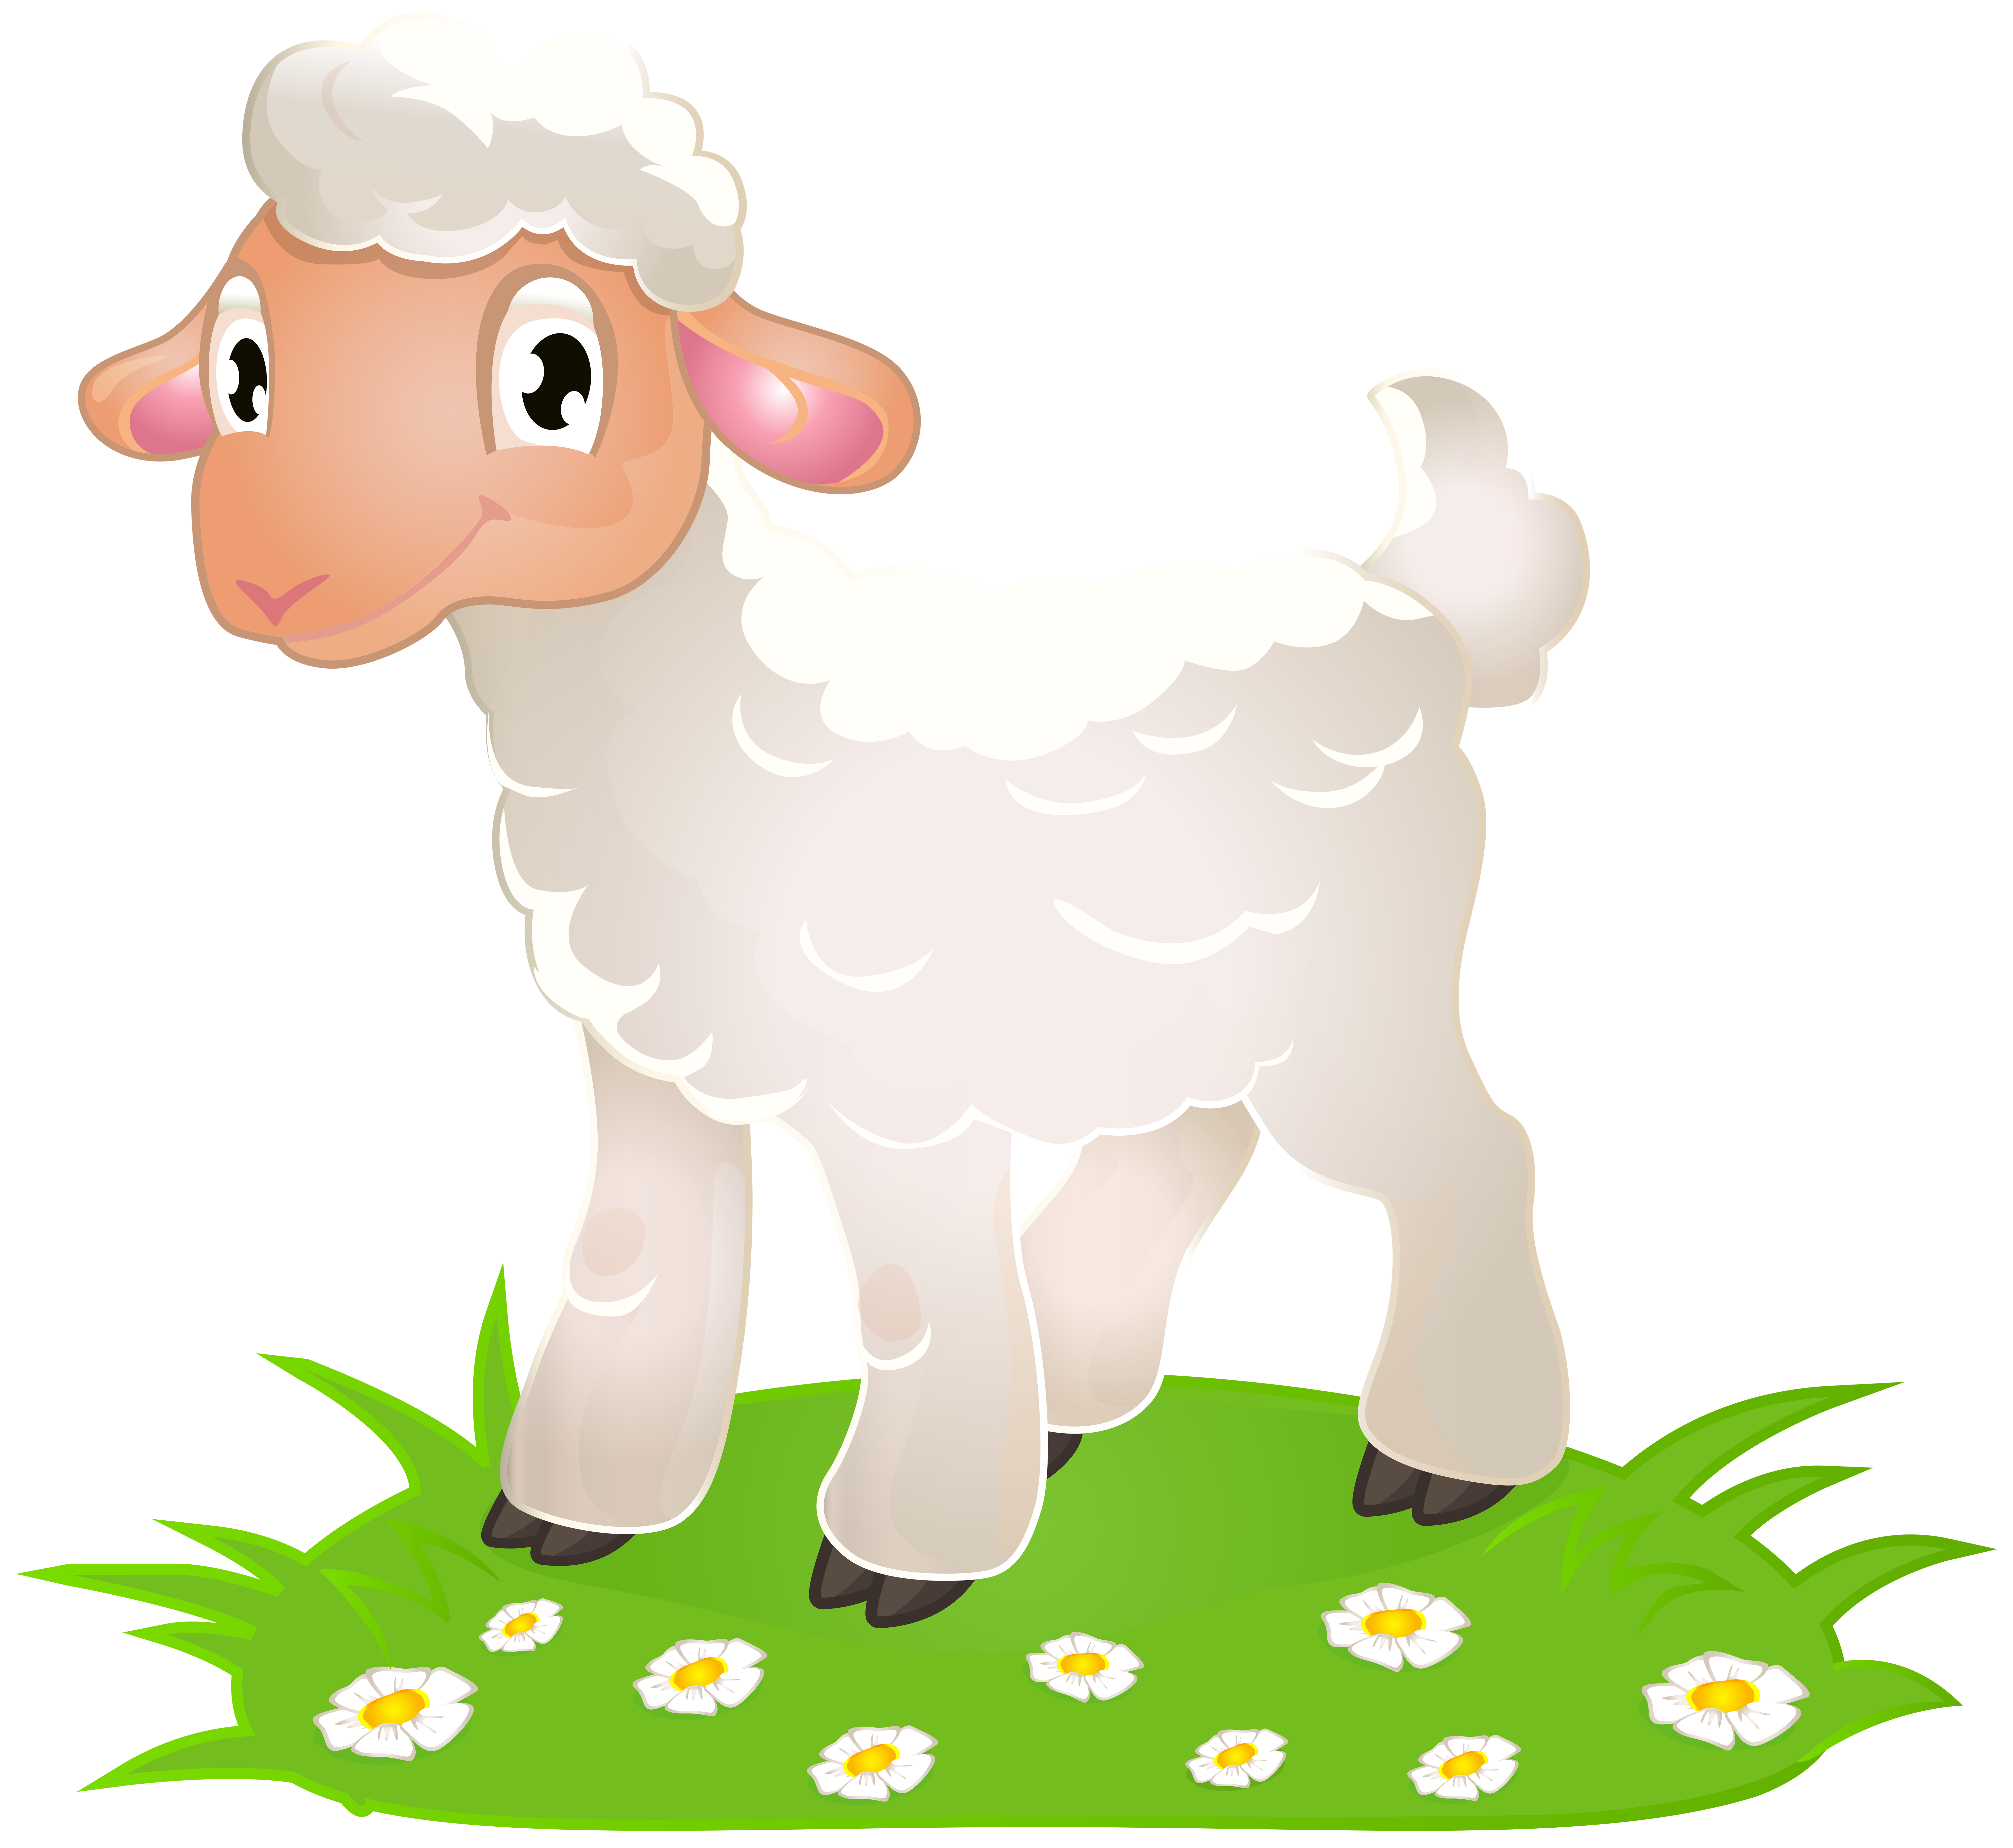 Easter with grass png. Lamb clipart primitive